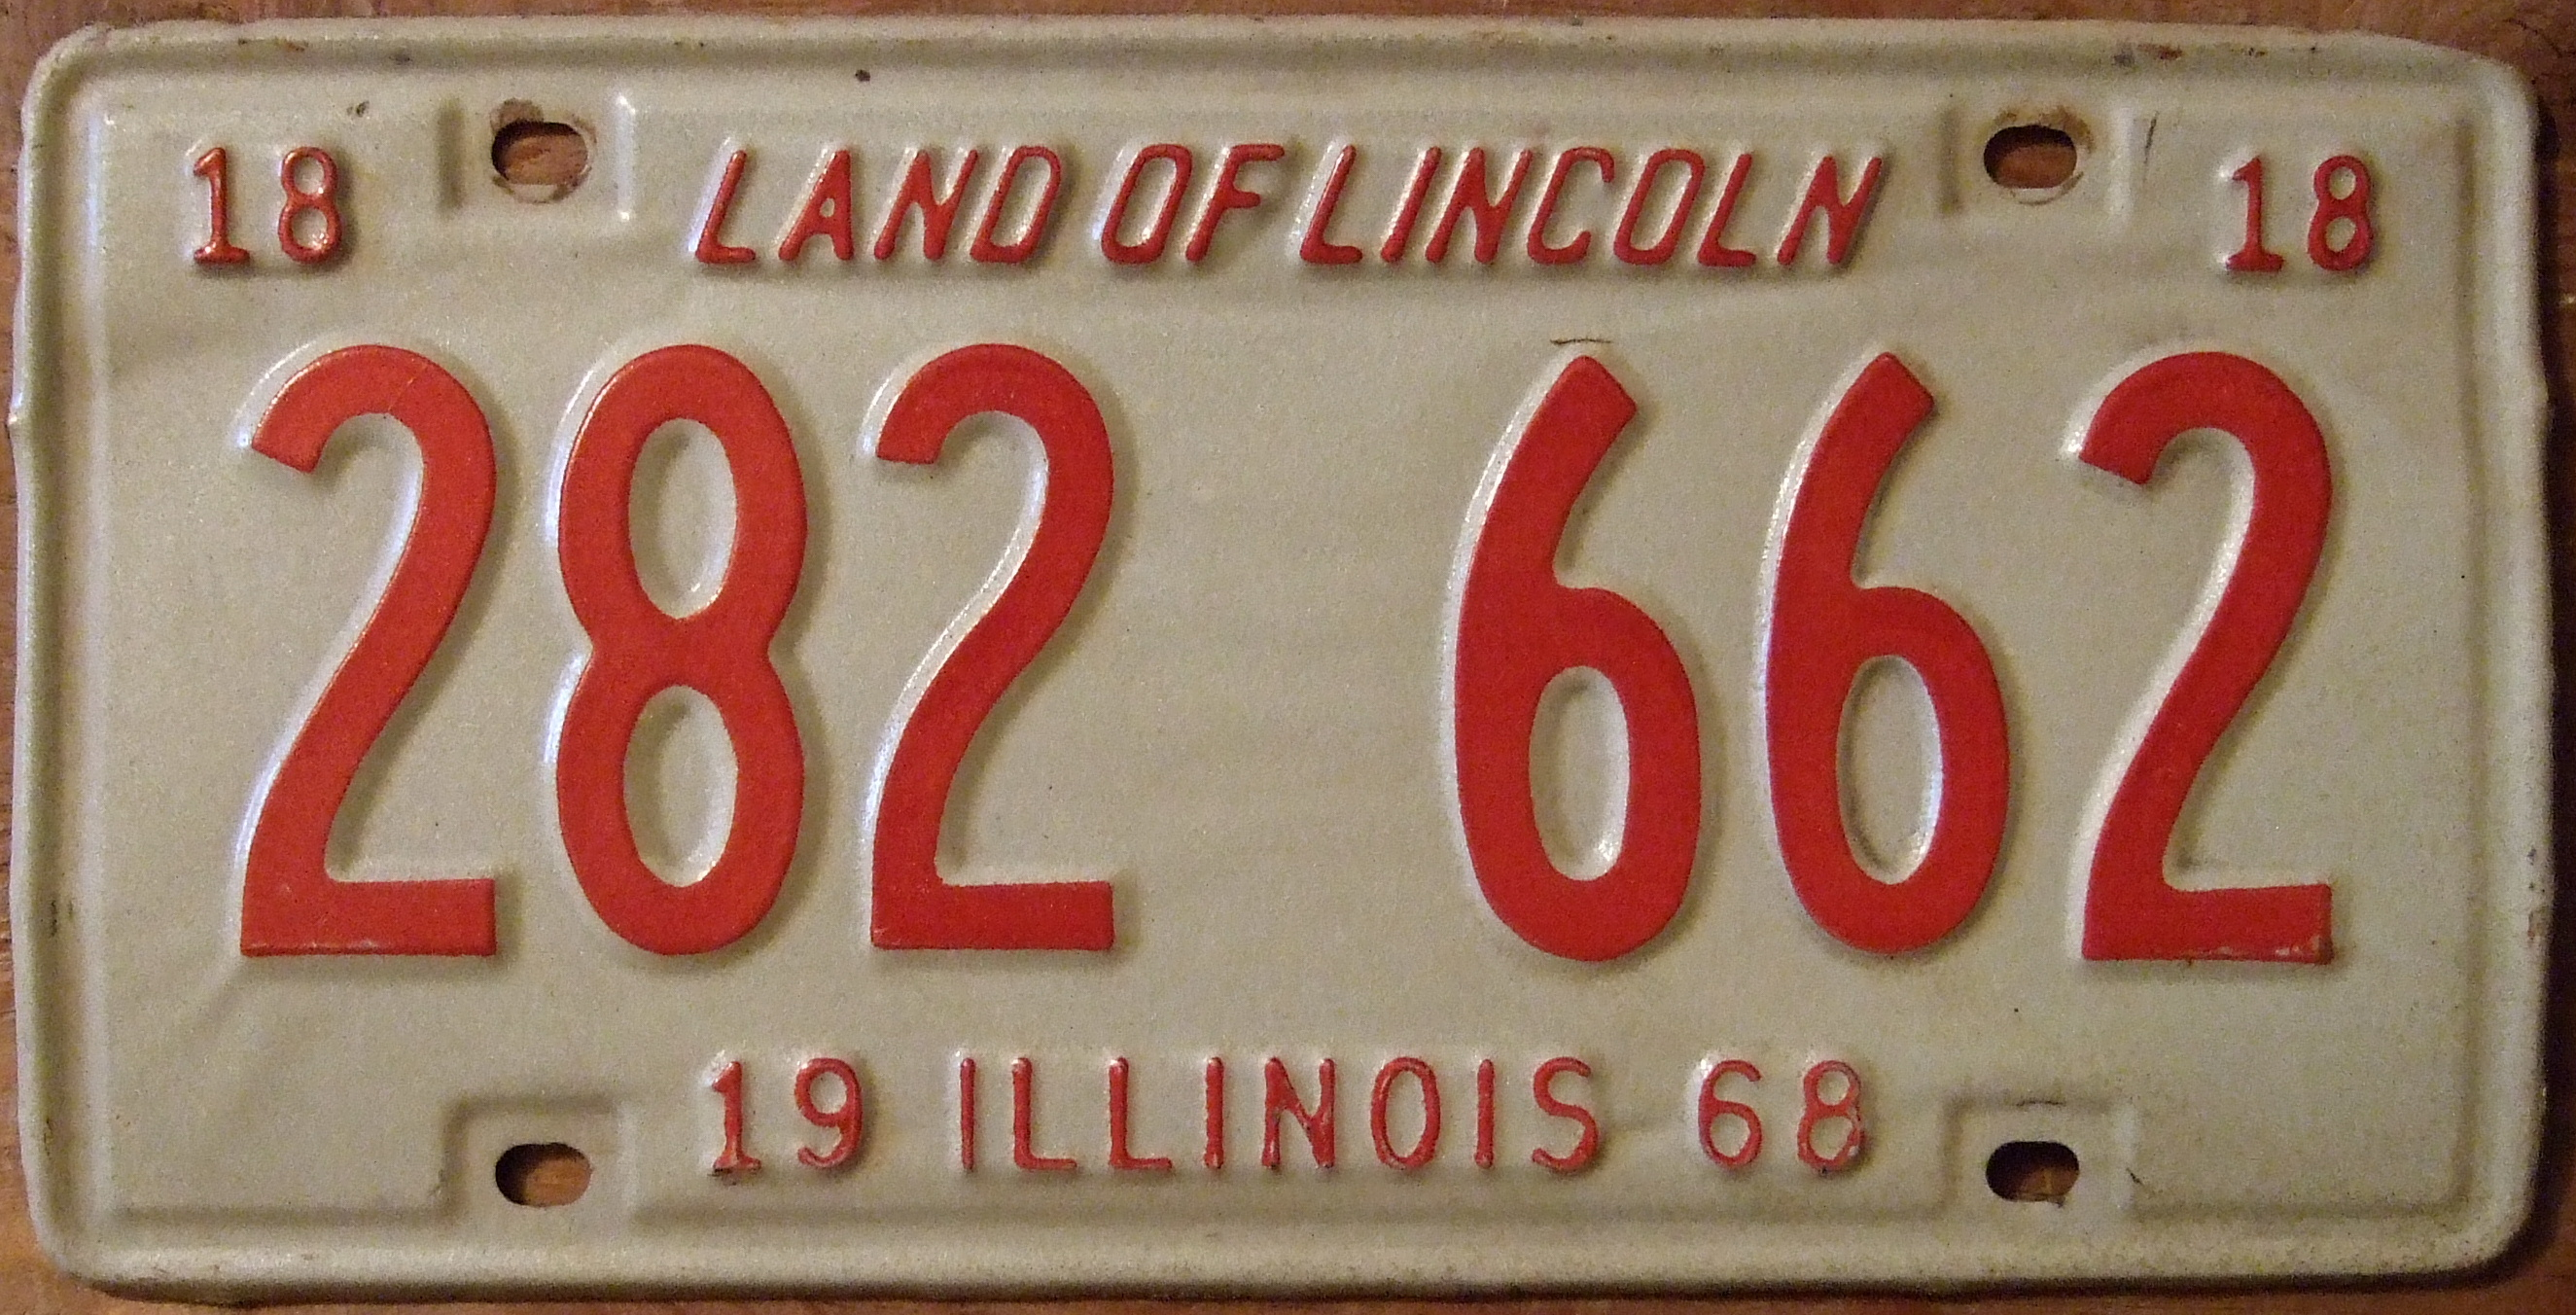 File:ILLINOIS 1968 LICENSE PLATE 282-662 - Flickr - woody1778a.jpg ...